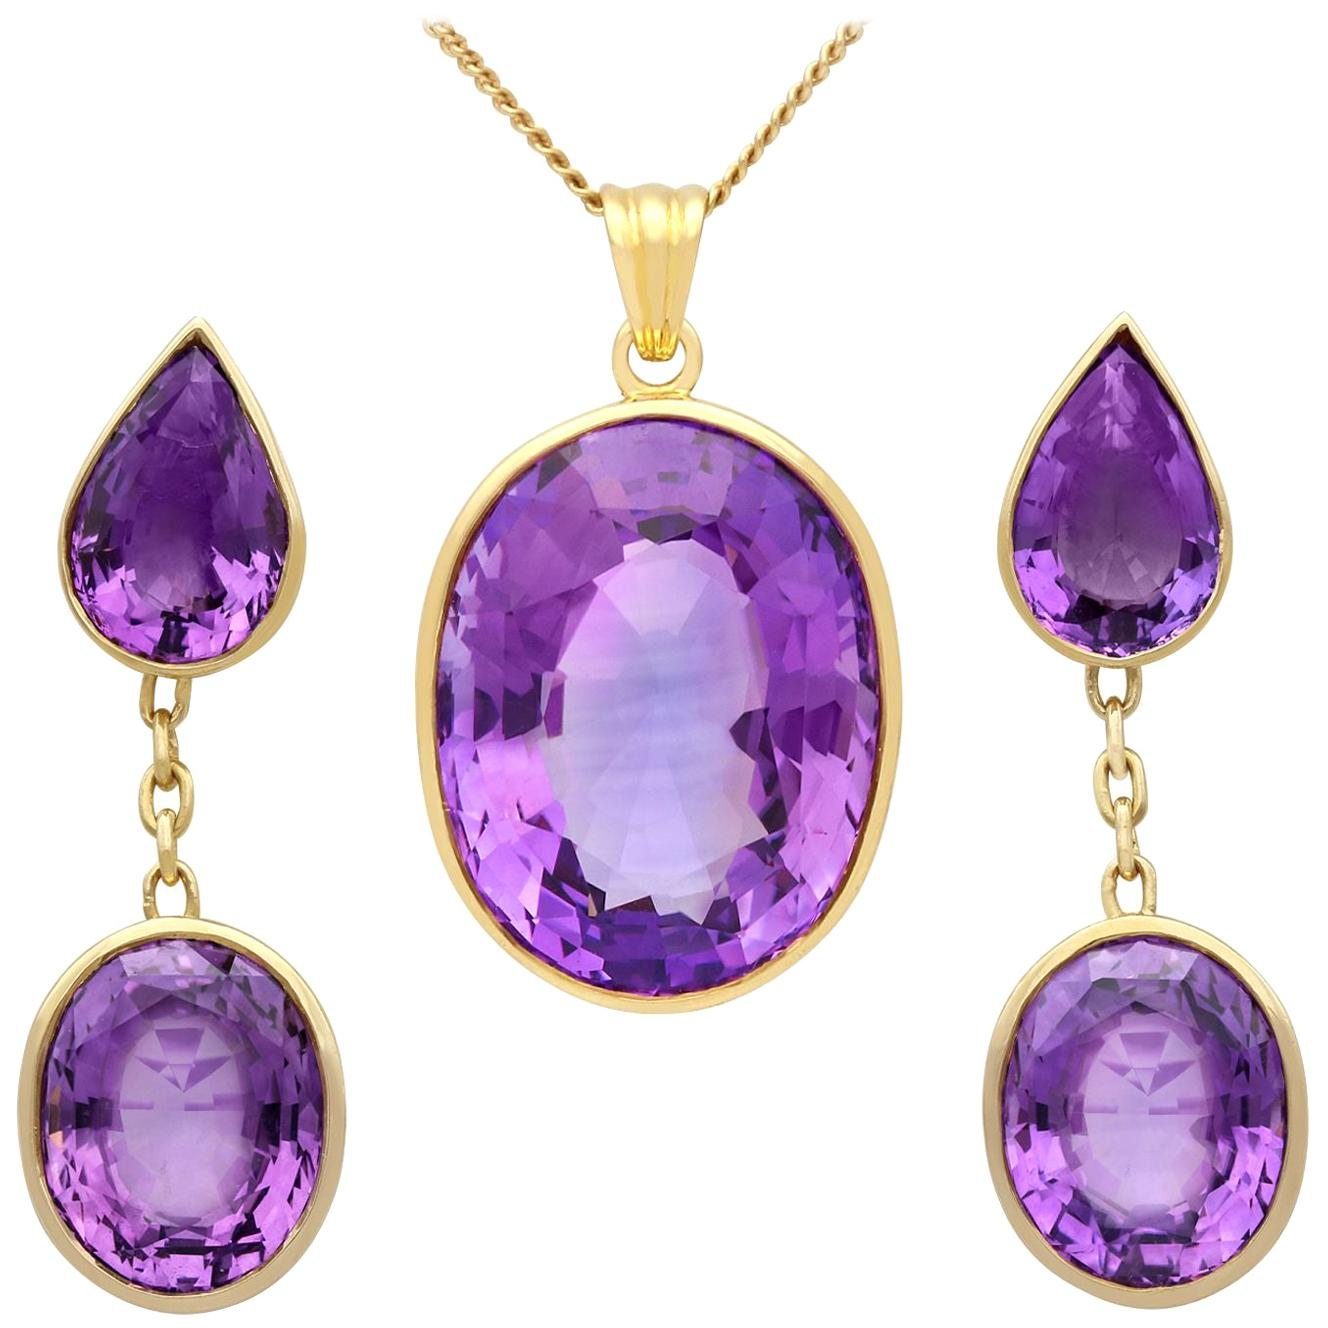 1950s 42.91 Carat Amethyst and Yellow Gold Earring and Necklace Set